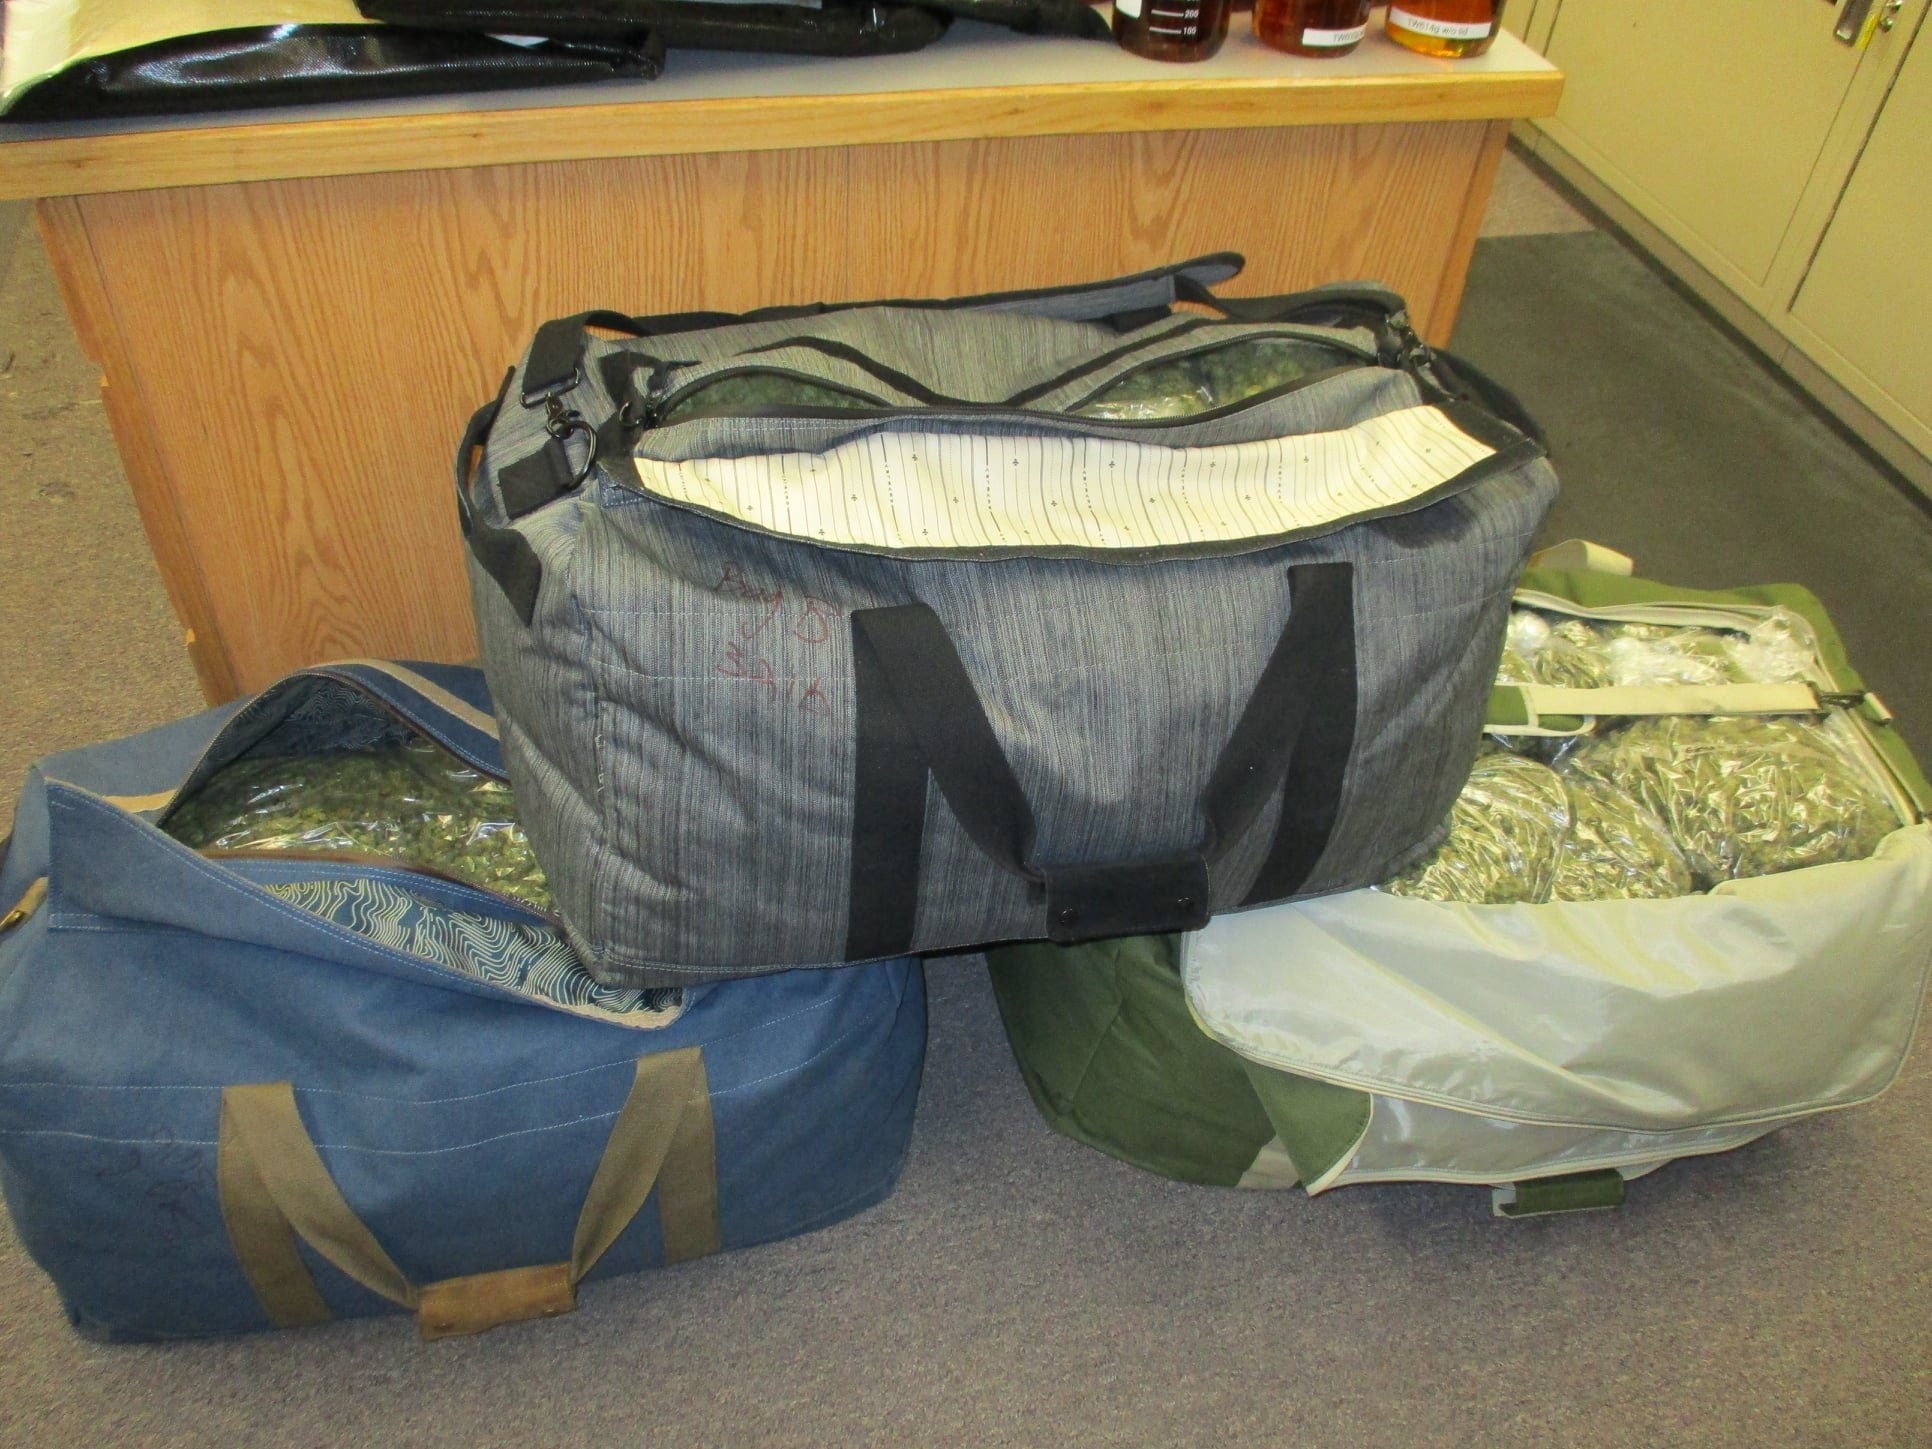 156 lbs of pot confiscated during a traffic stop